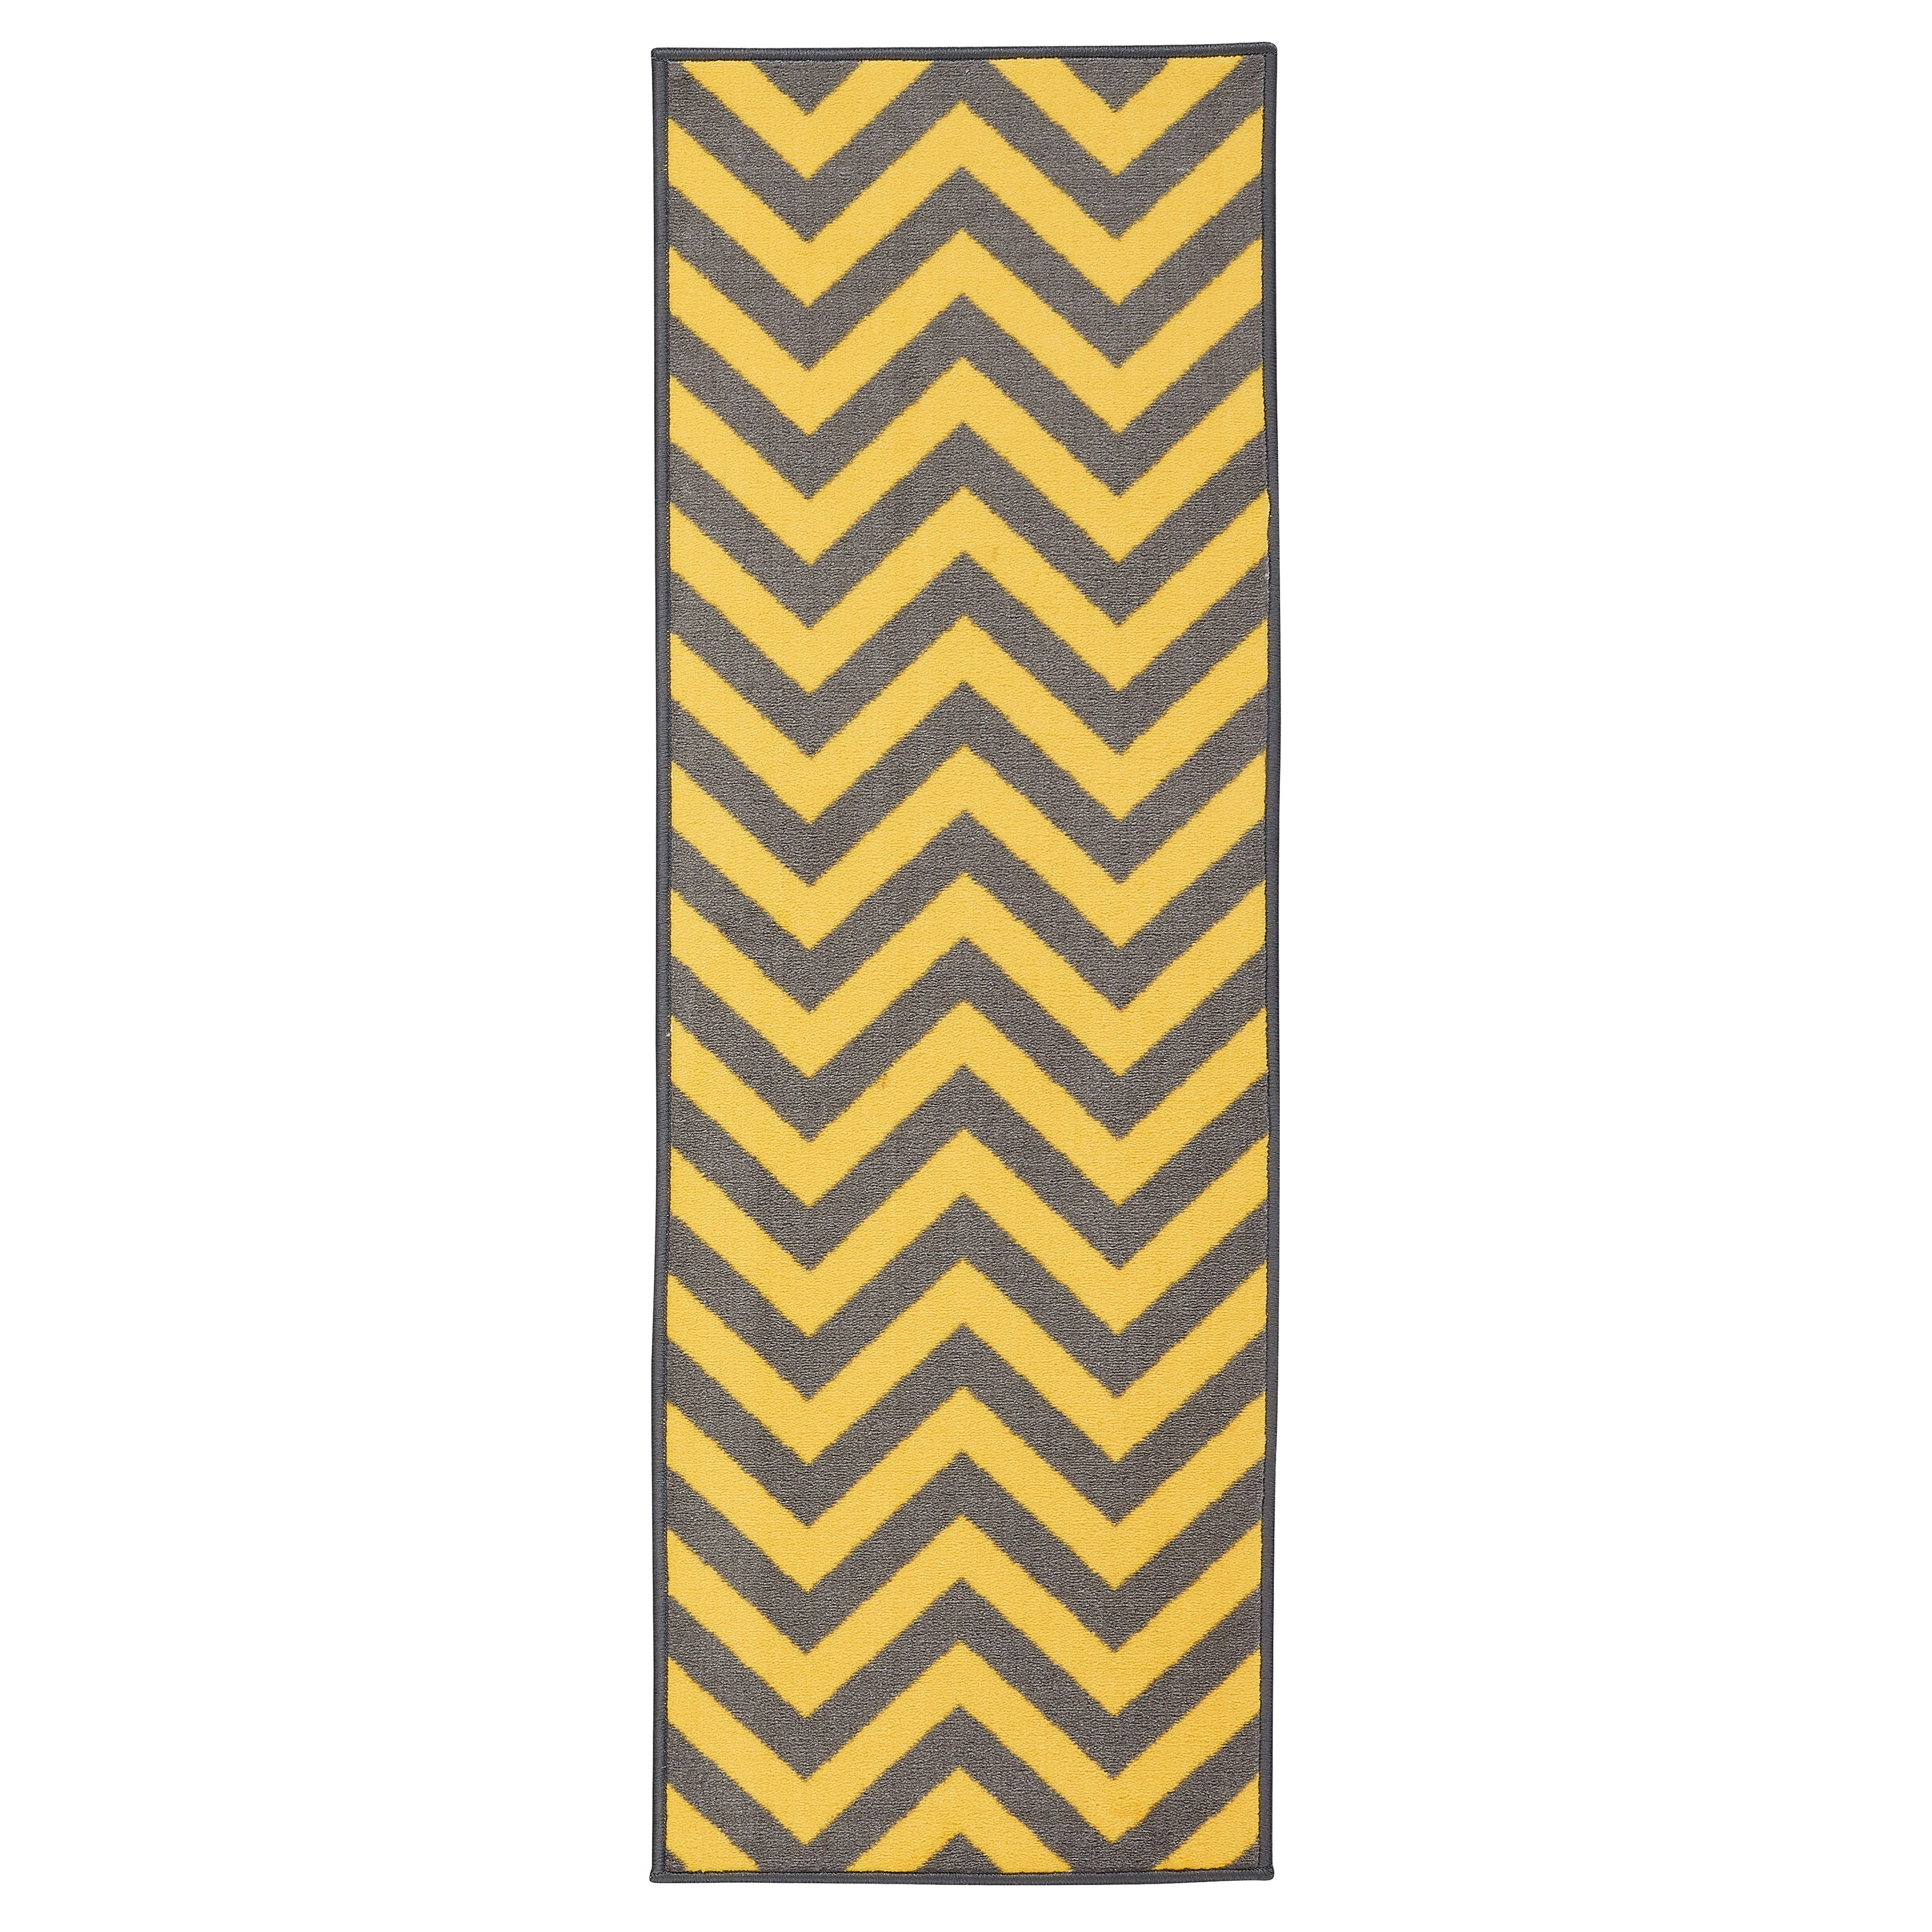 Runner Yellow Area Rugs Online At Com Our Best Deals